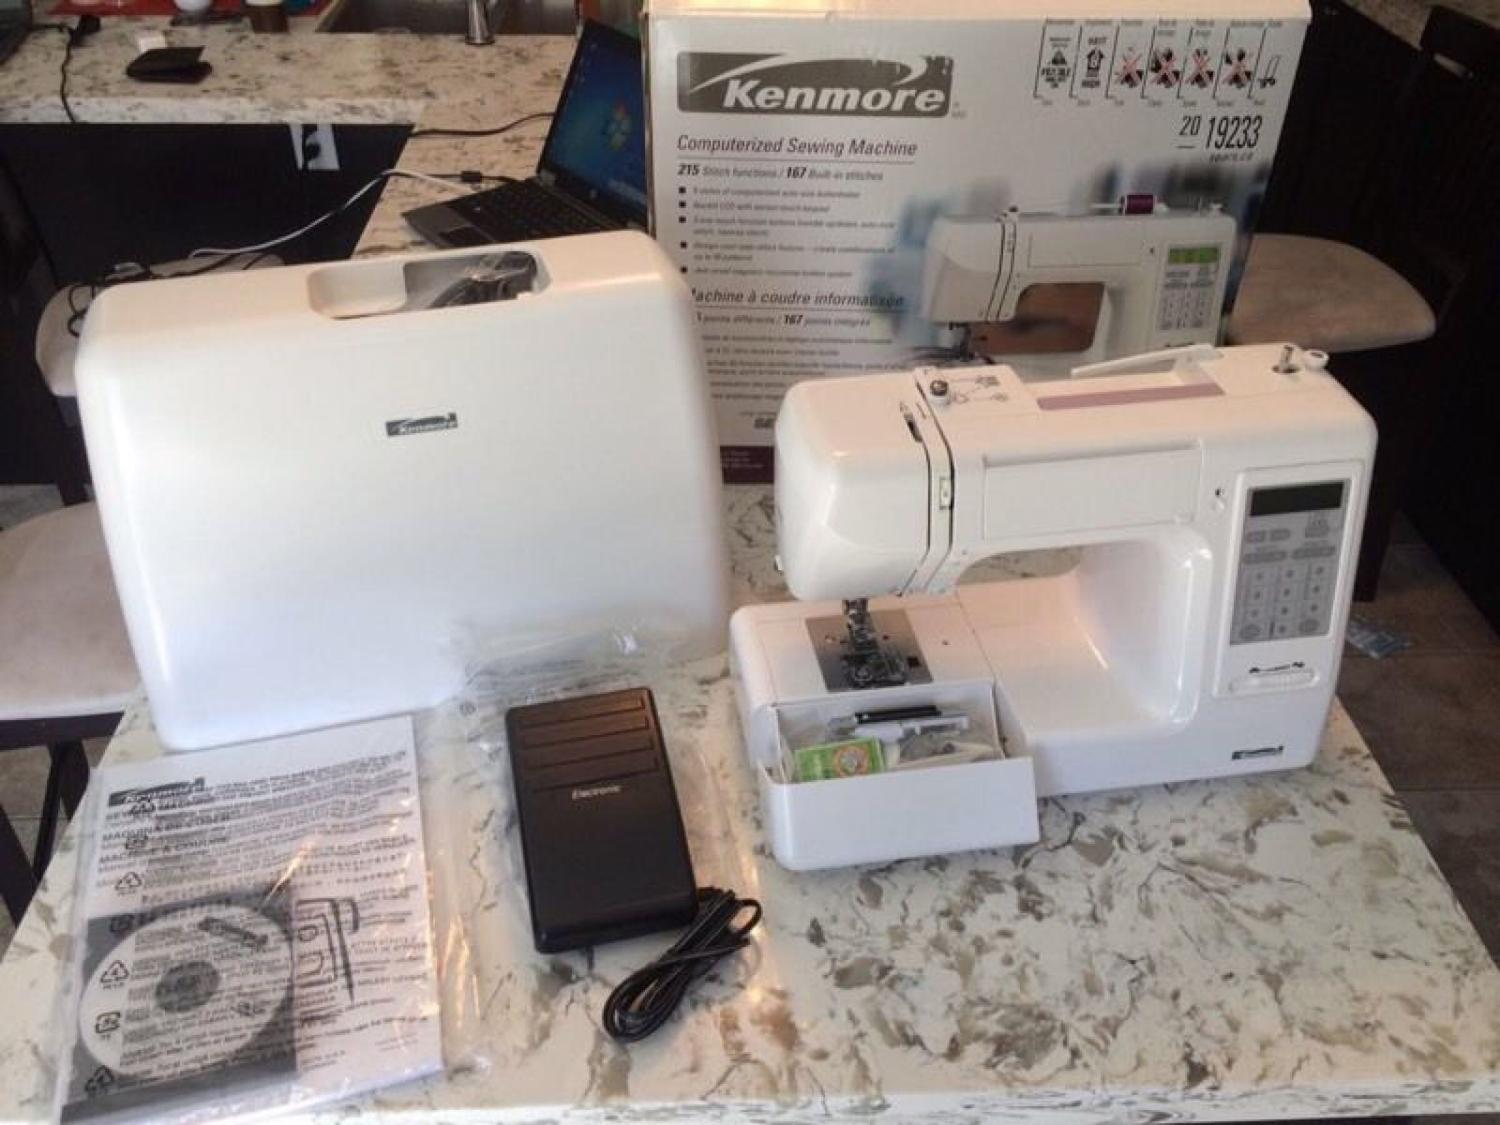 Find more Kenmore Computerized Sewing Machine (19233) - Brand New. for sale  at up to 90% off